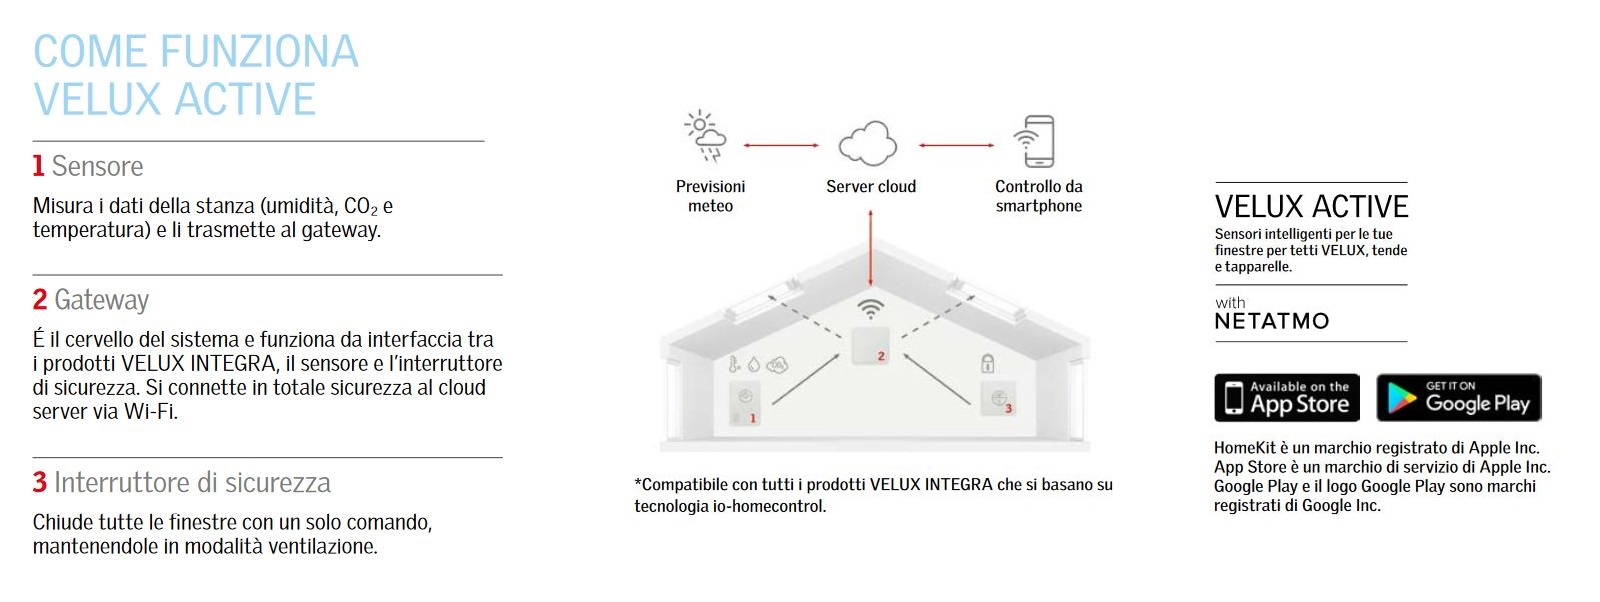 Velux active kix 300 per finestre integra maffei sistemi for Assistenza finestre velux roma